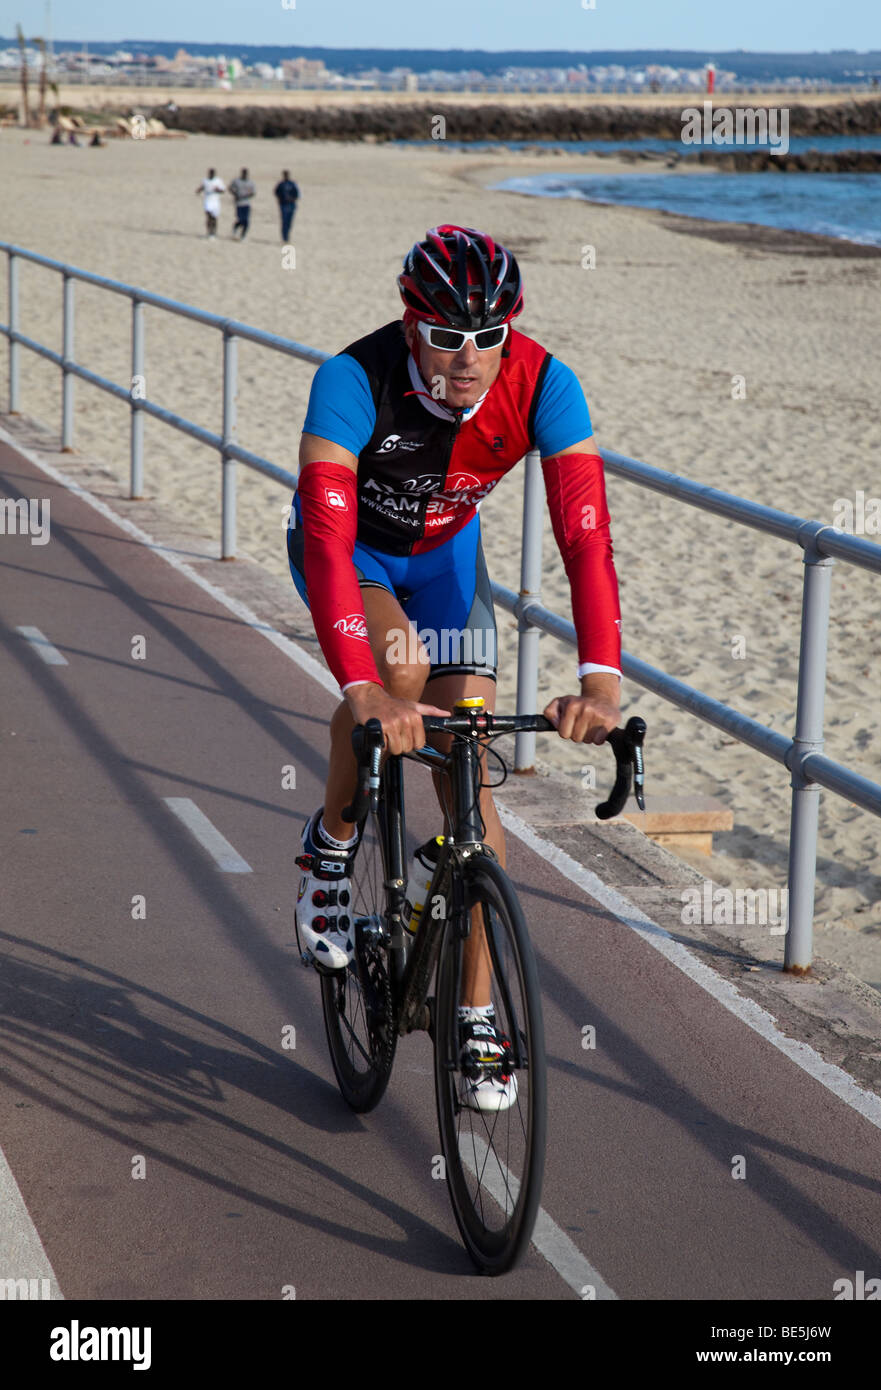 Man cycling on promenade in cycle lane with men running training on beach Palma Mallorca Spain - Stock Image